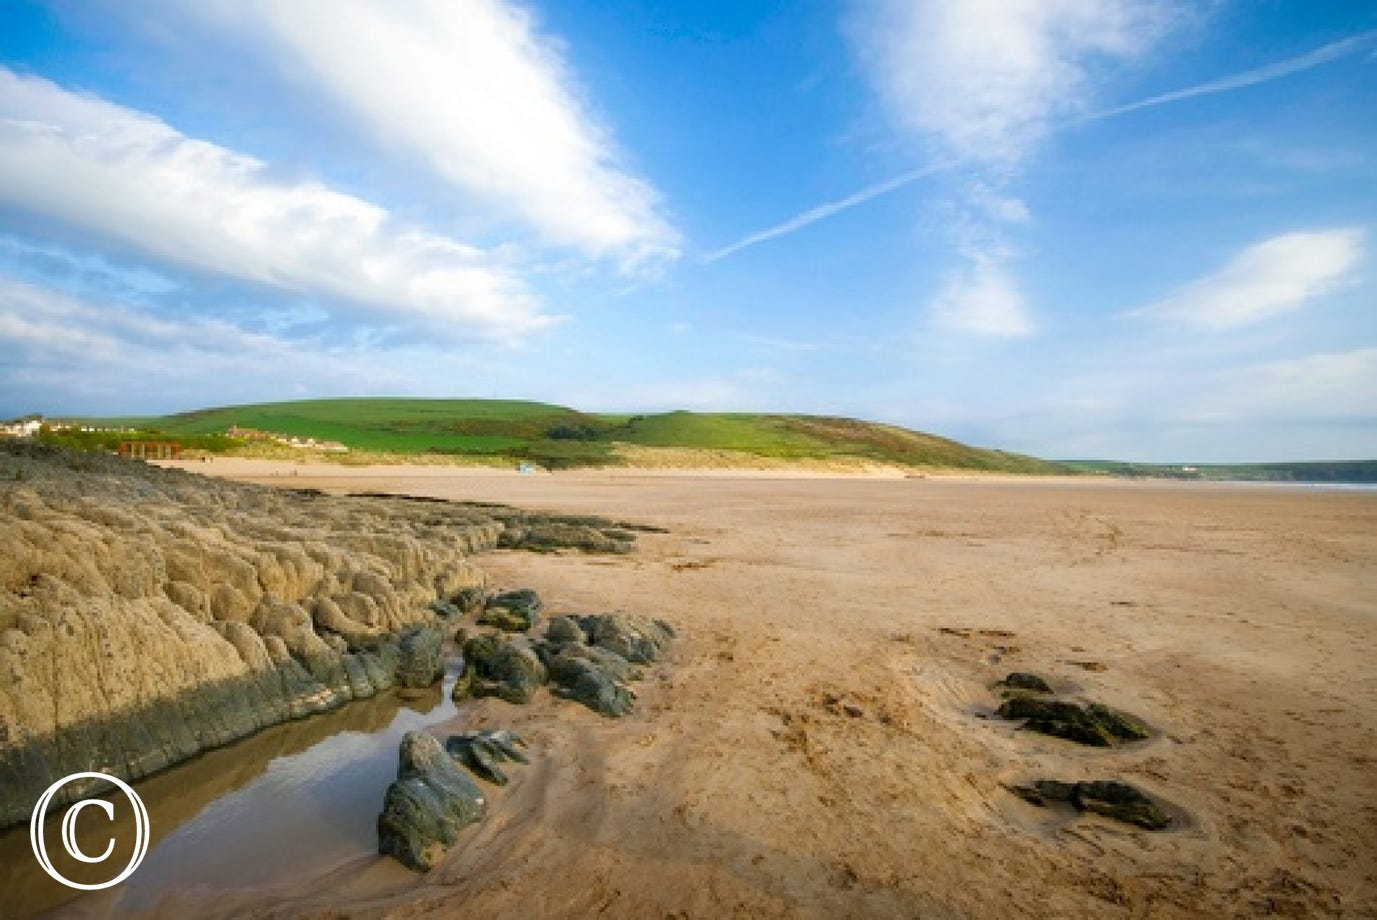 The beautiful beach of Woolacombe is a stones throw away!